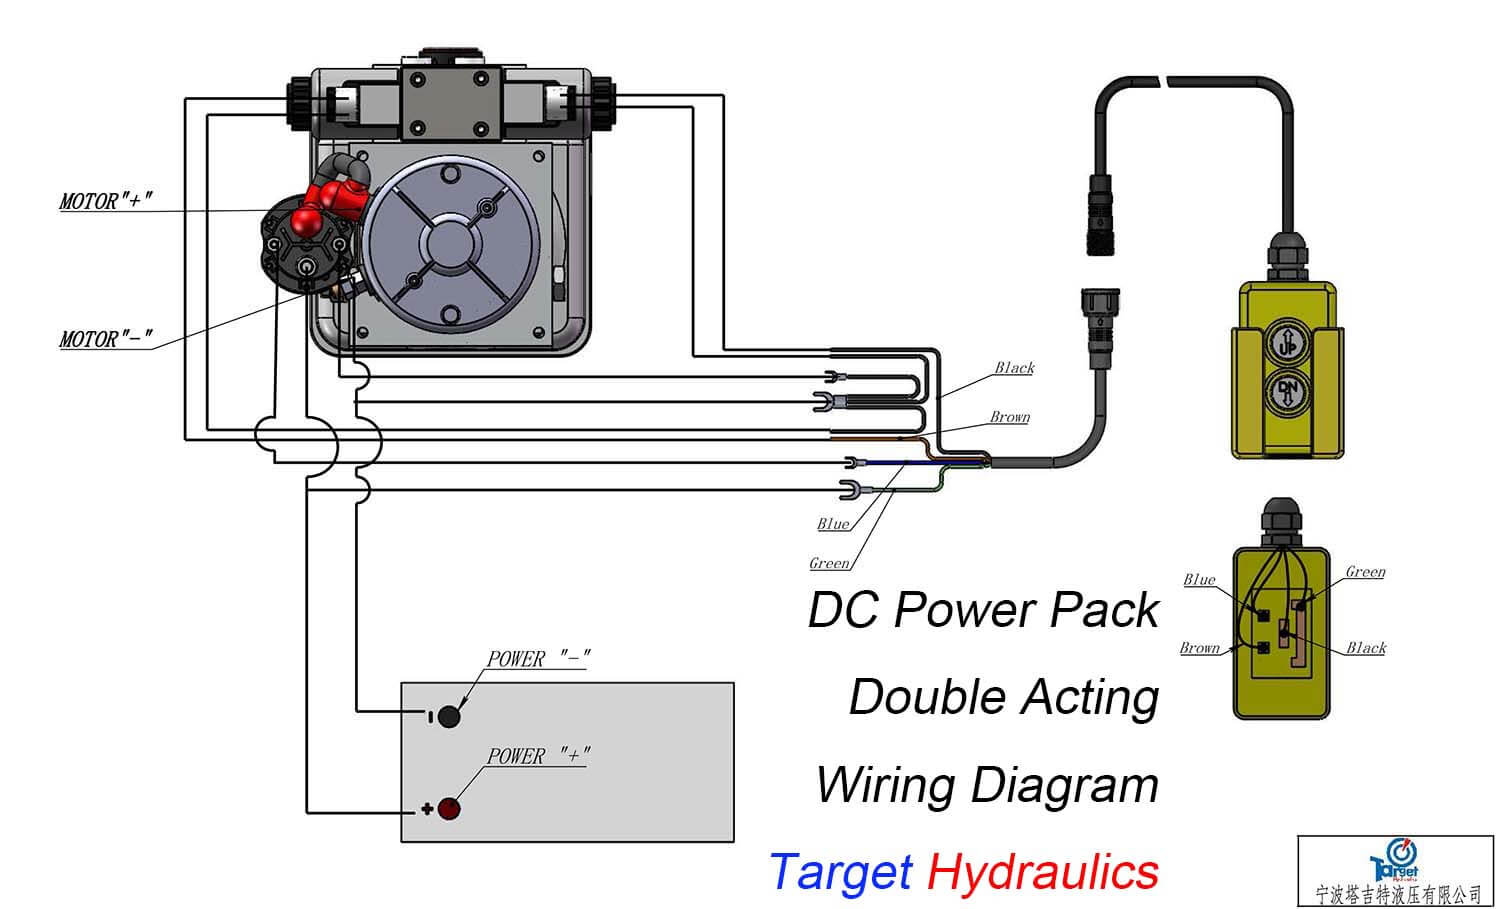 How To Wire Hydraulic Power Packpower Unit Diagram Design Mashins Wiring Wires Dc Motor Double Acting Pack